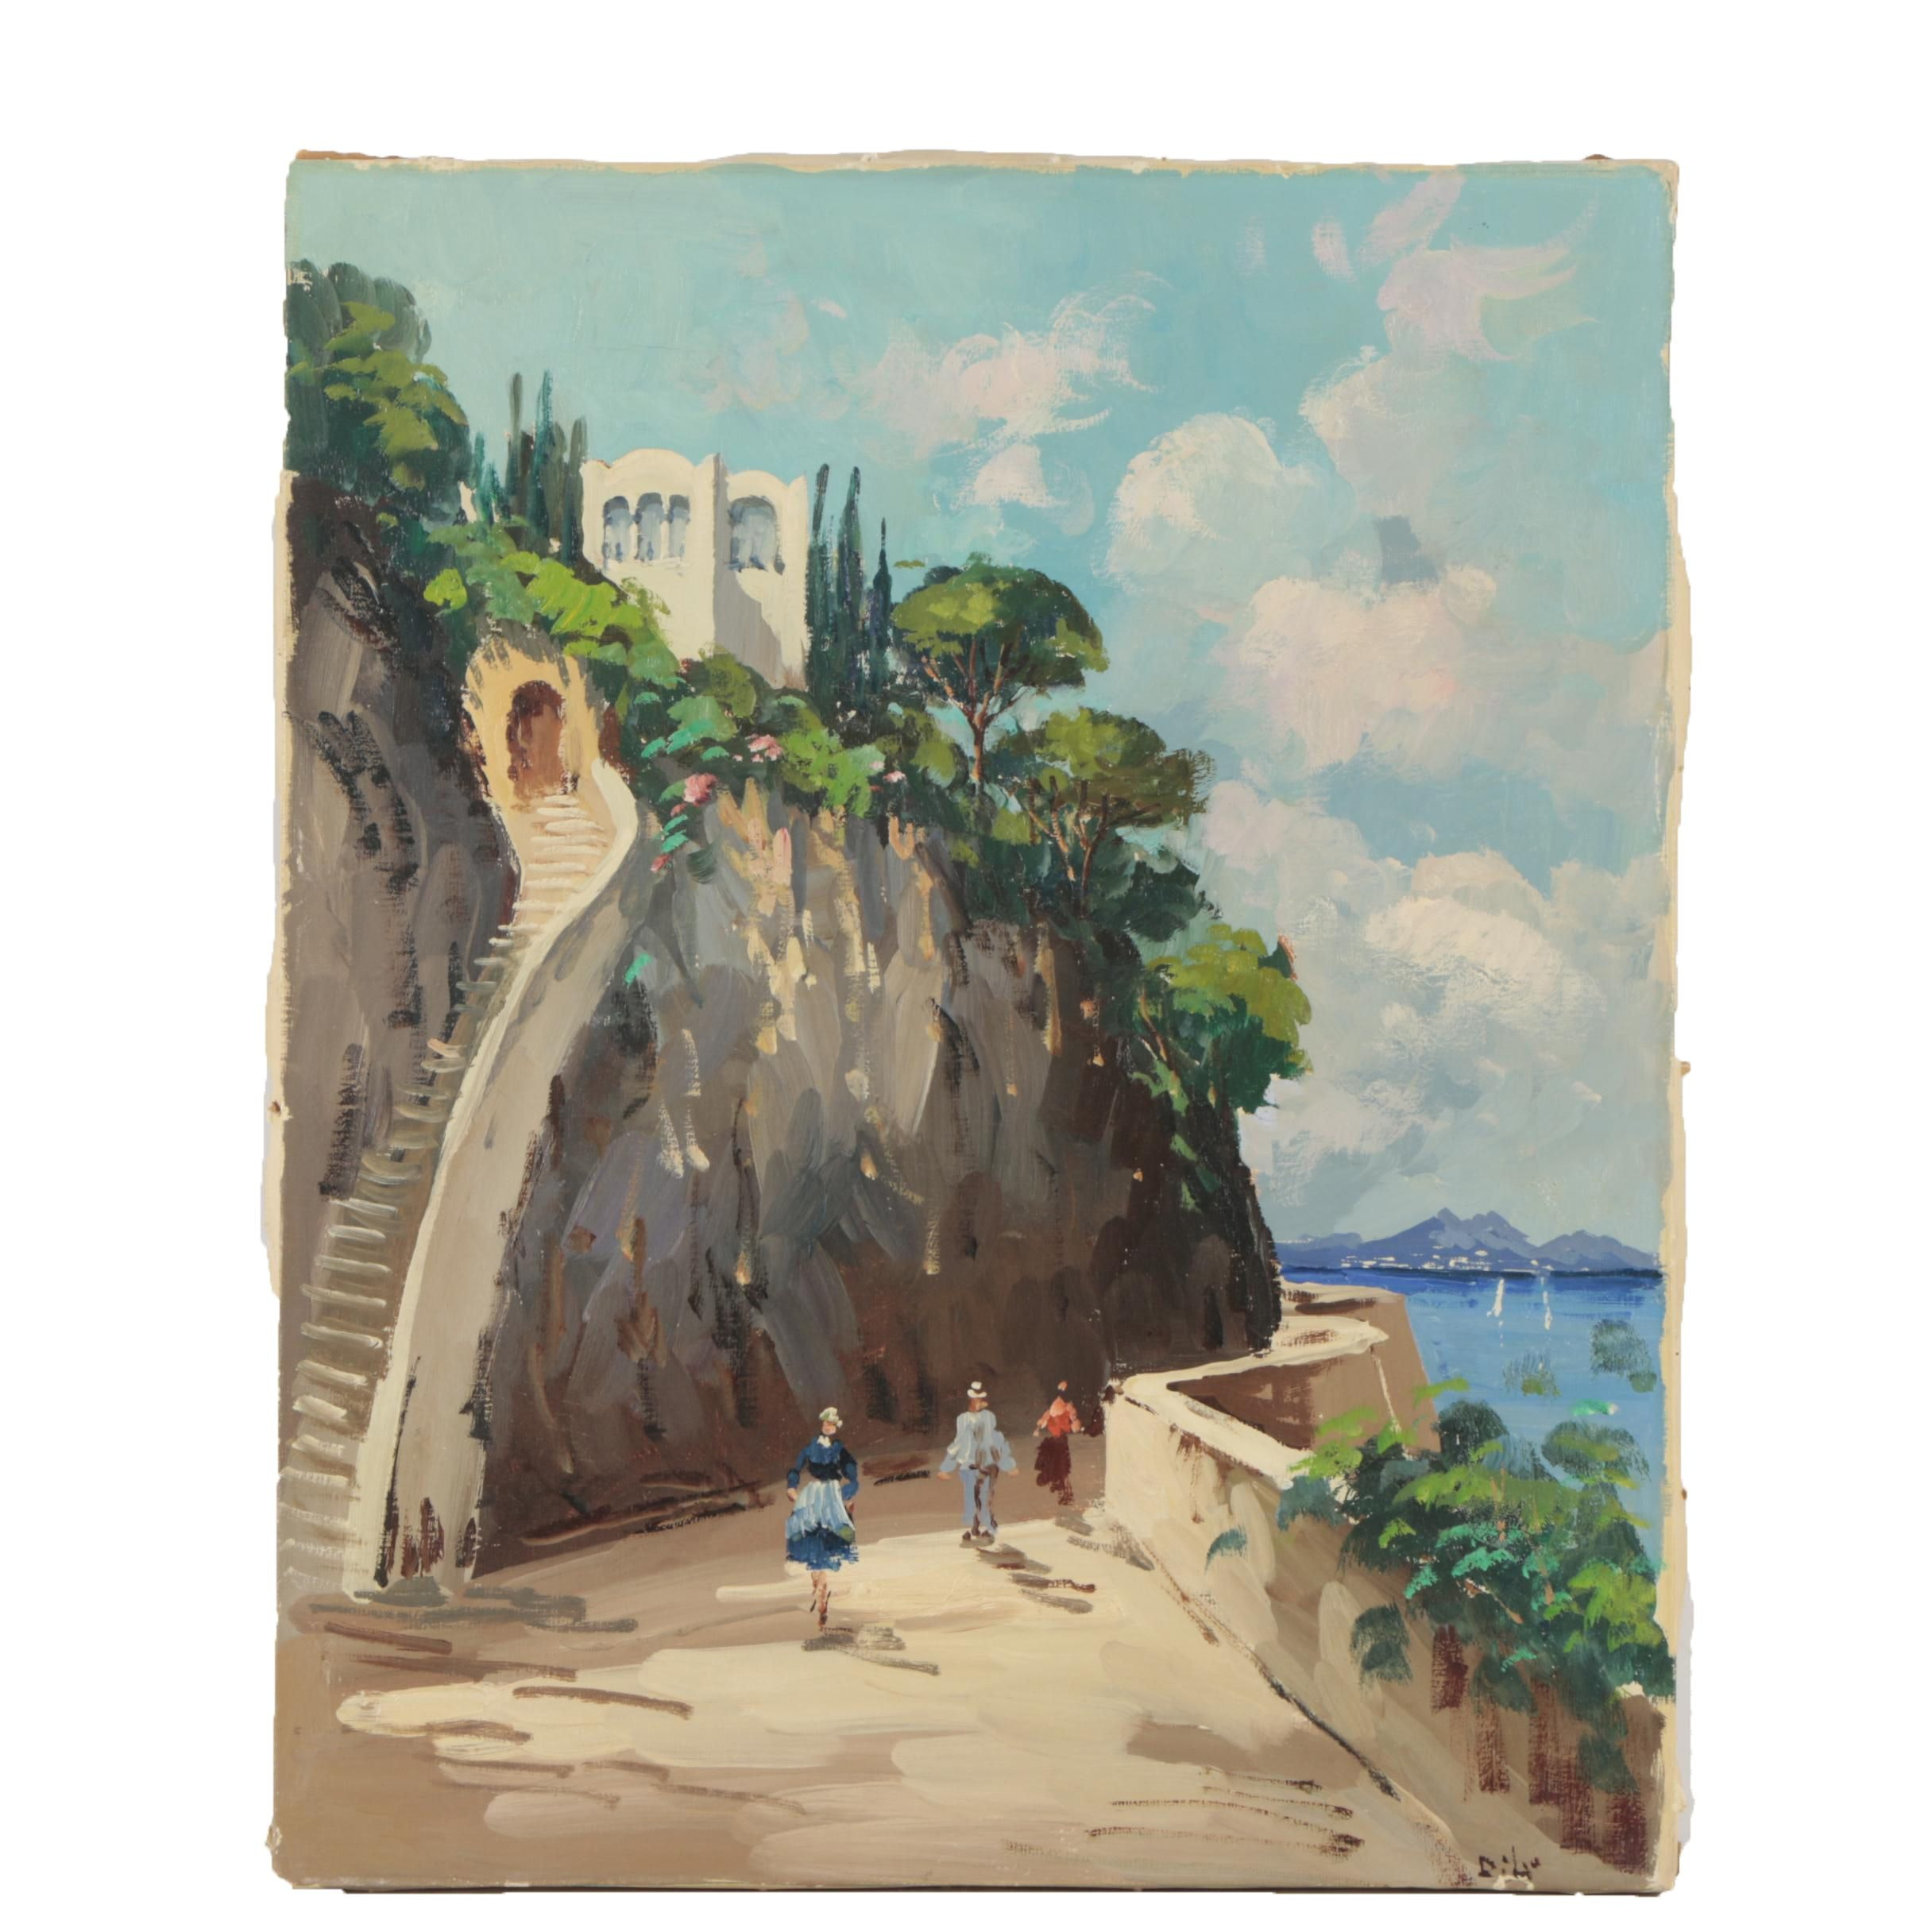 Oil Painting of a Seaside Village